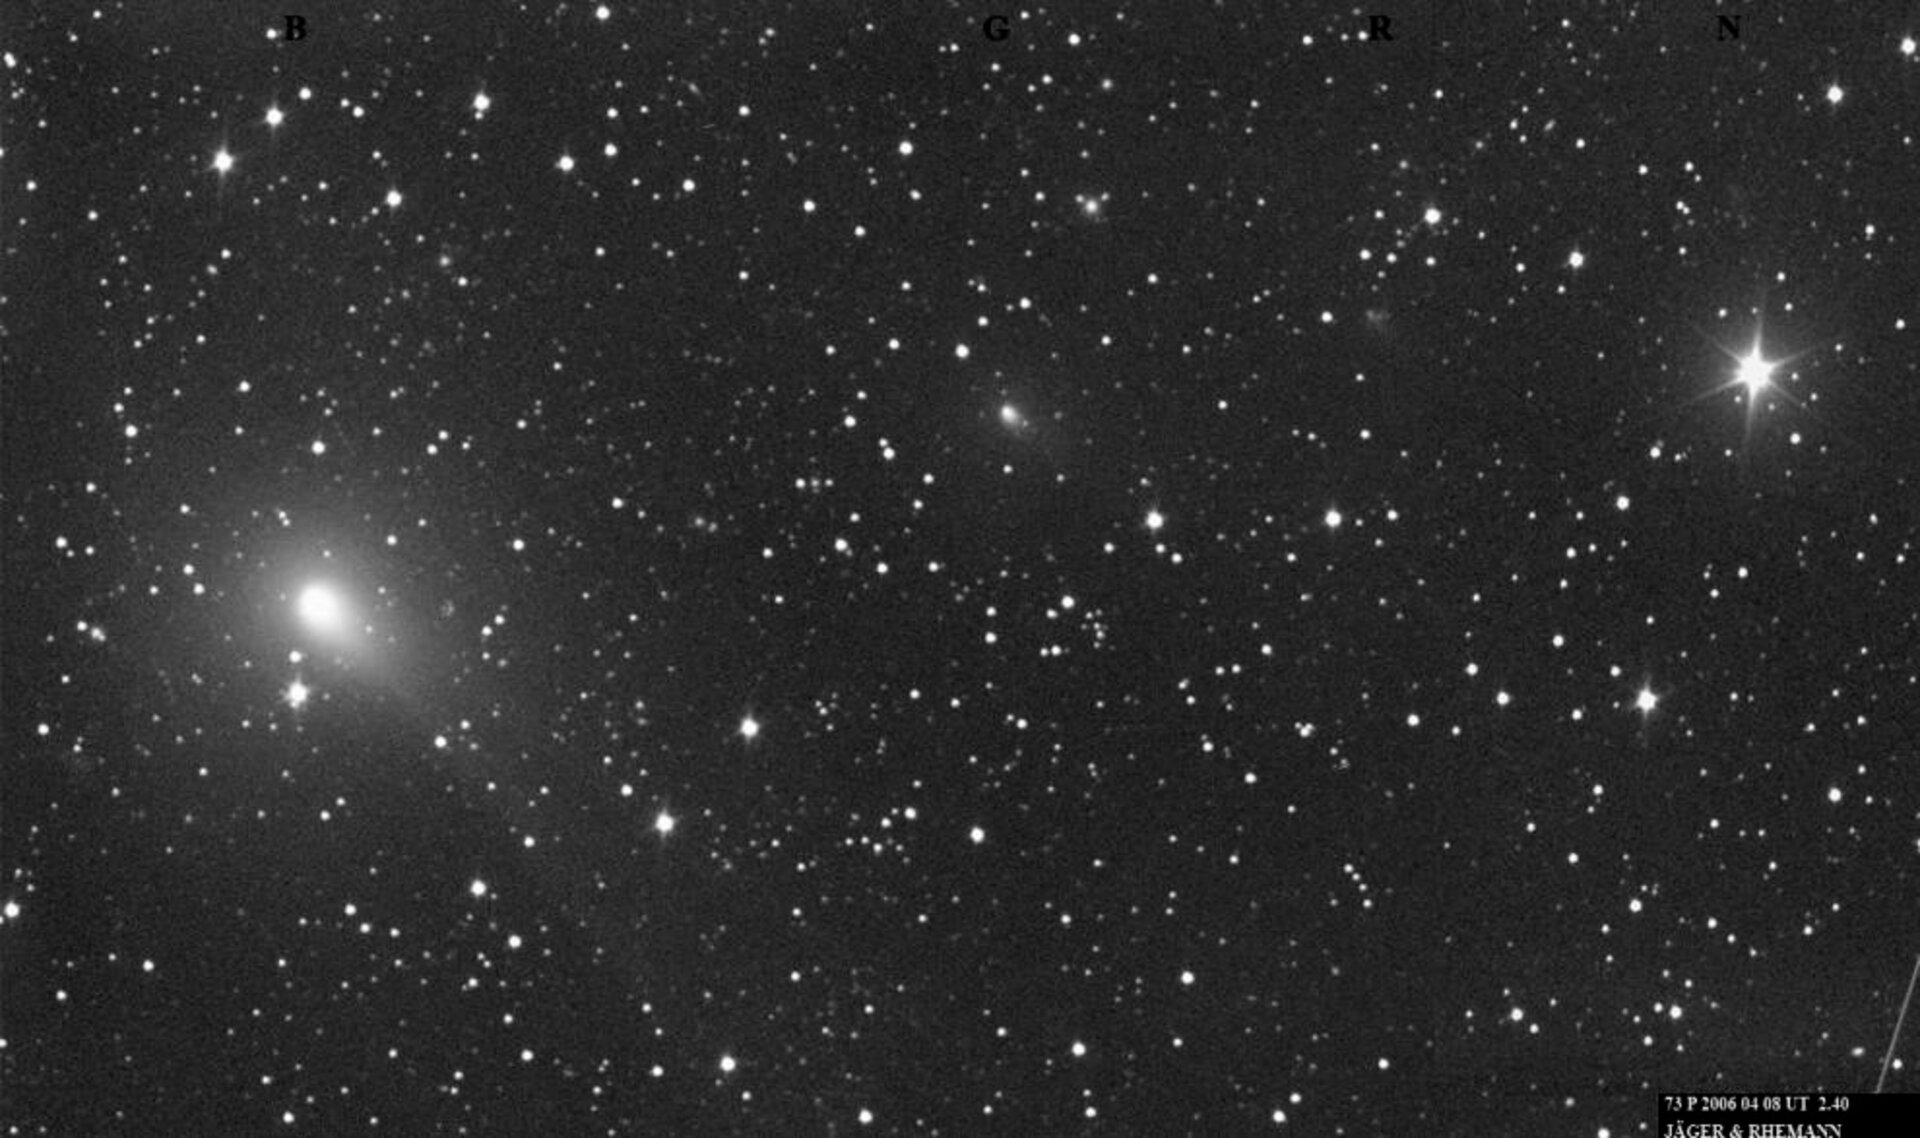 Ground based view of breaking-up Comet 73P/Schwassmann-Wachmann 3